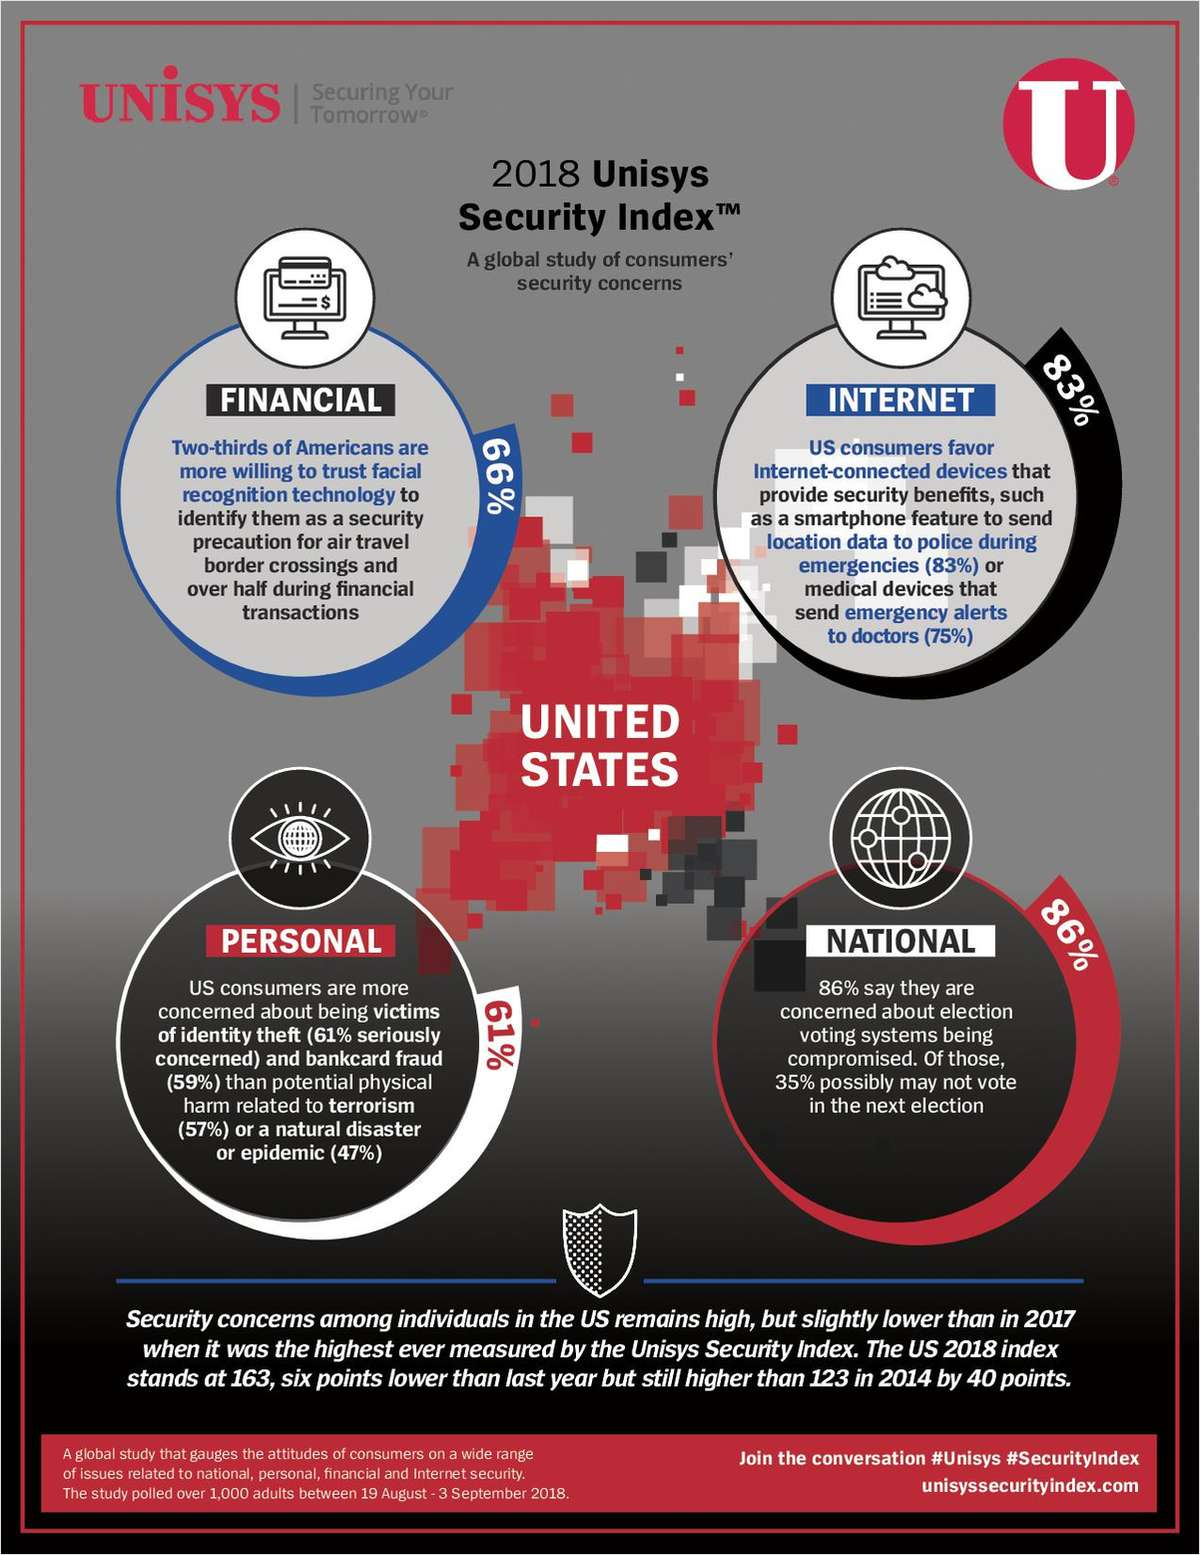 Unisys Security Index Report Infographic